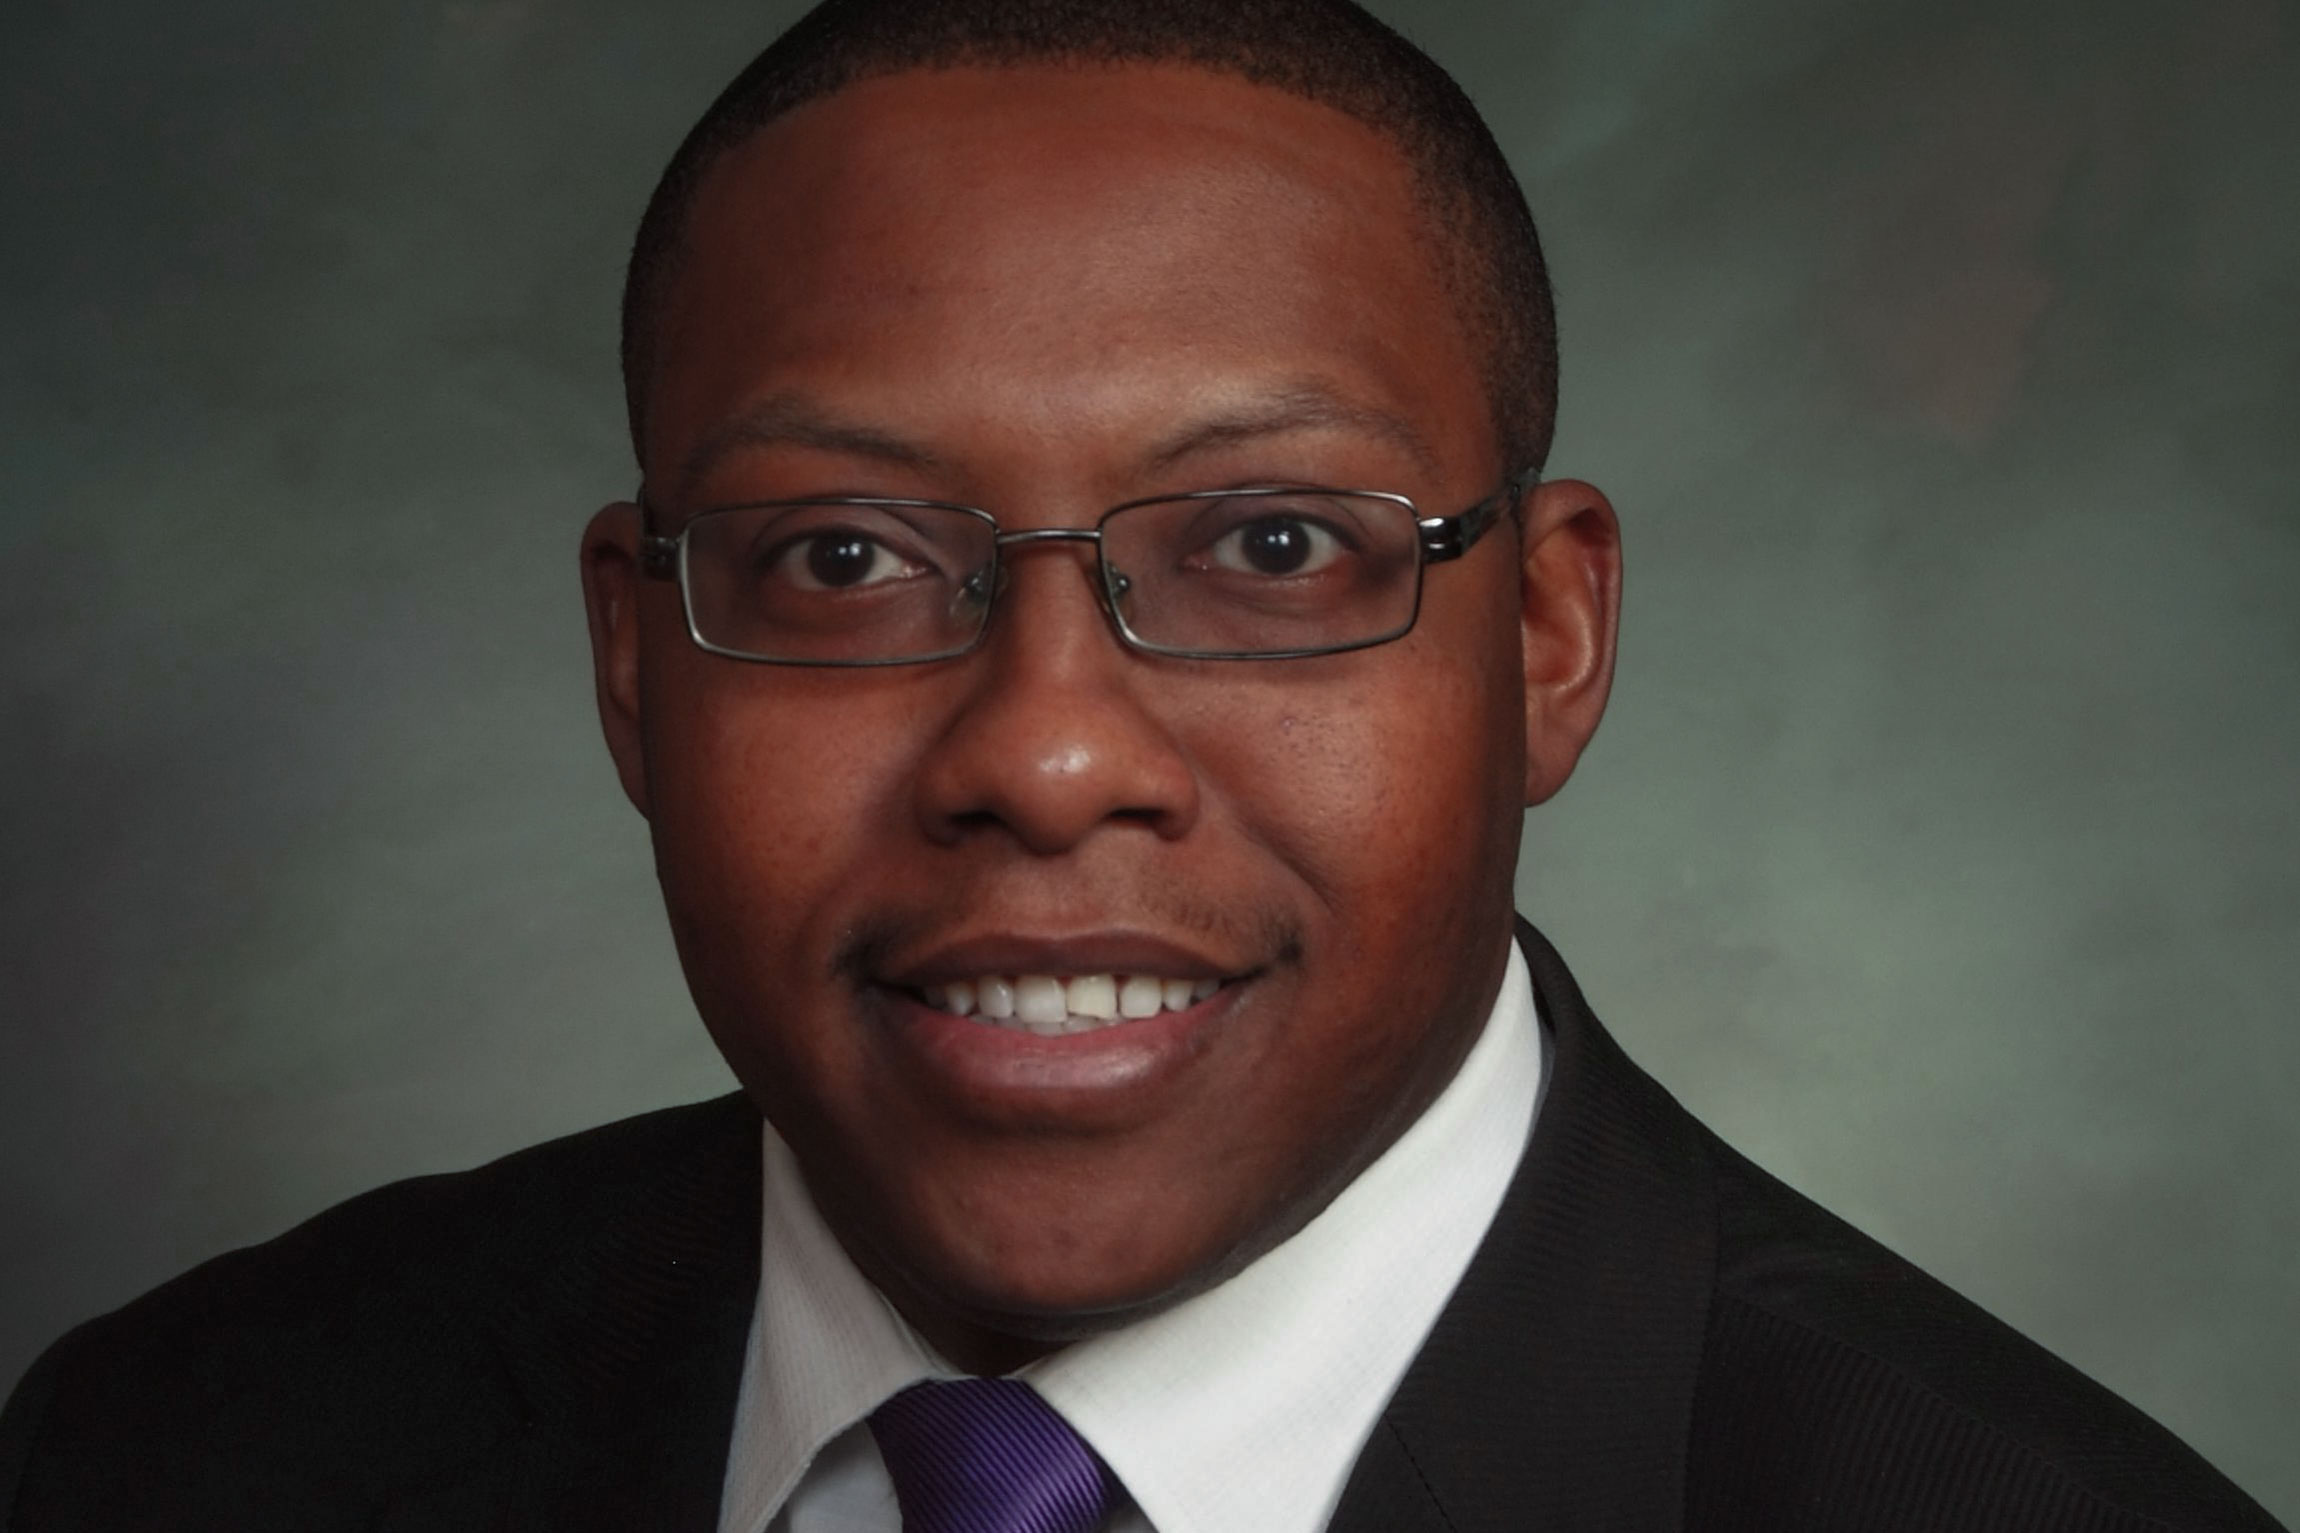 <p>Democratic Majority Deputy Whip Jovan Melton.</p>